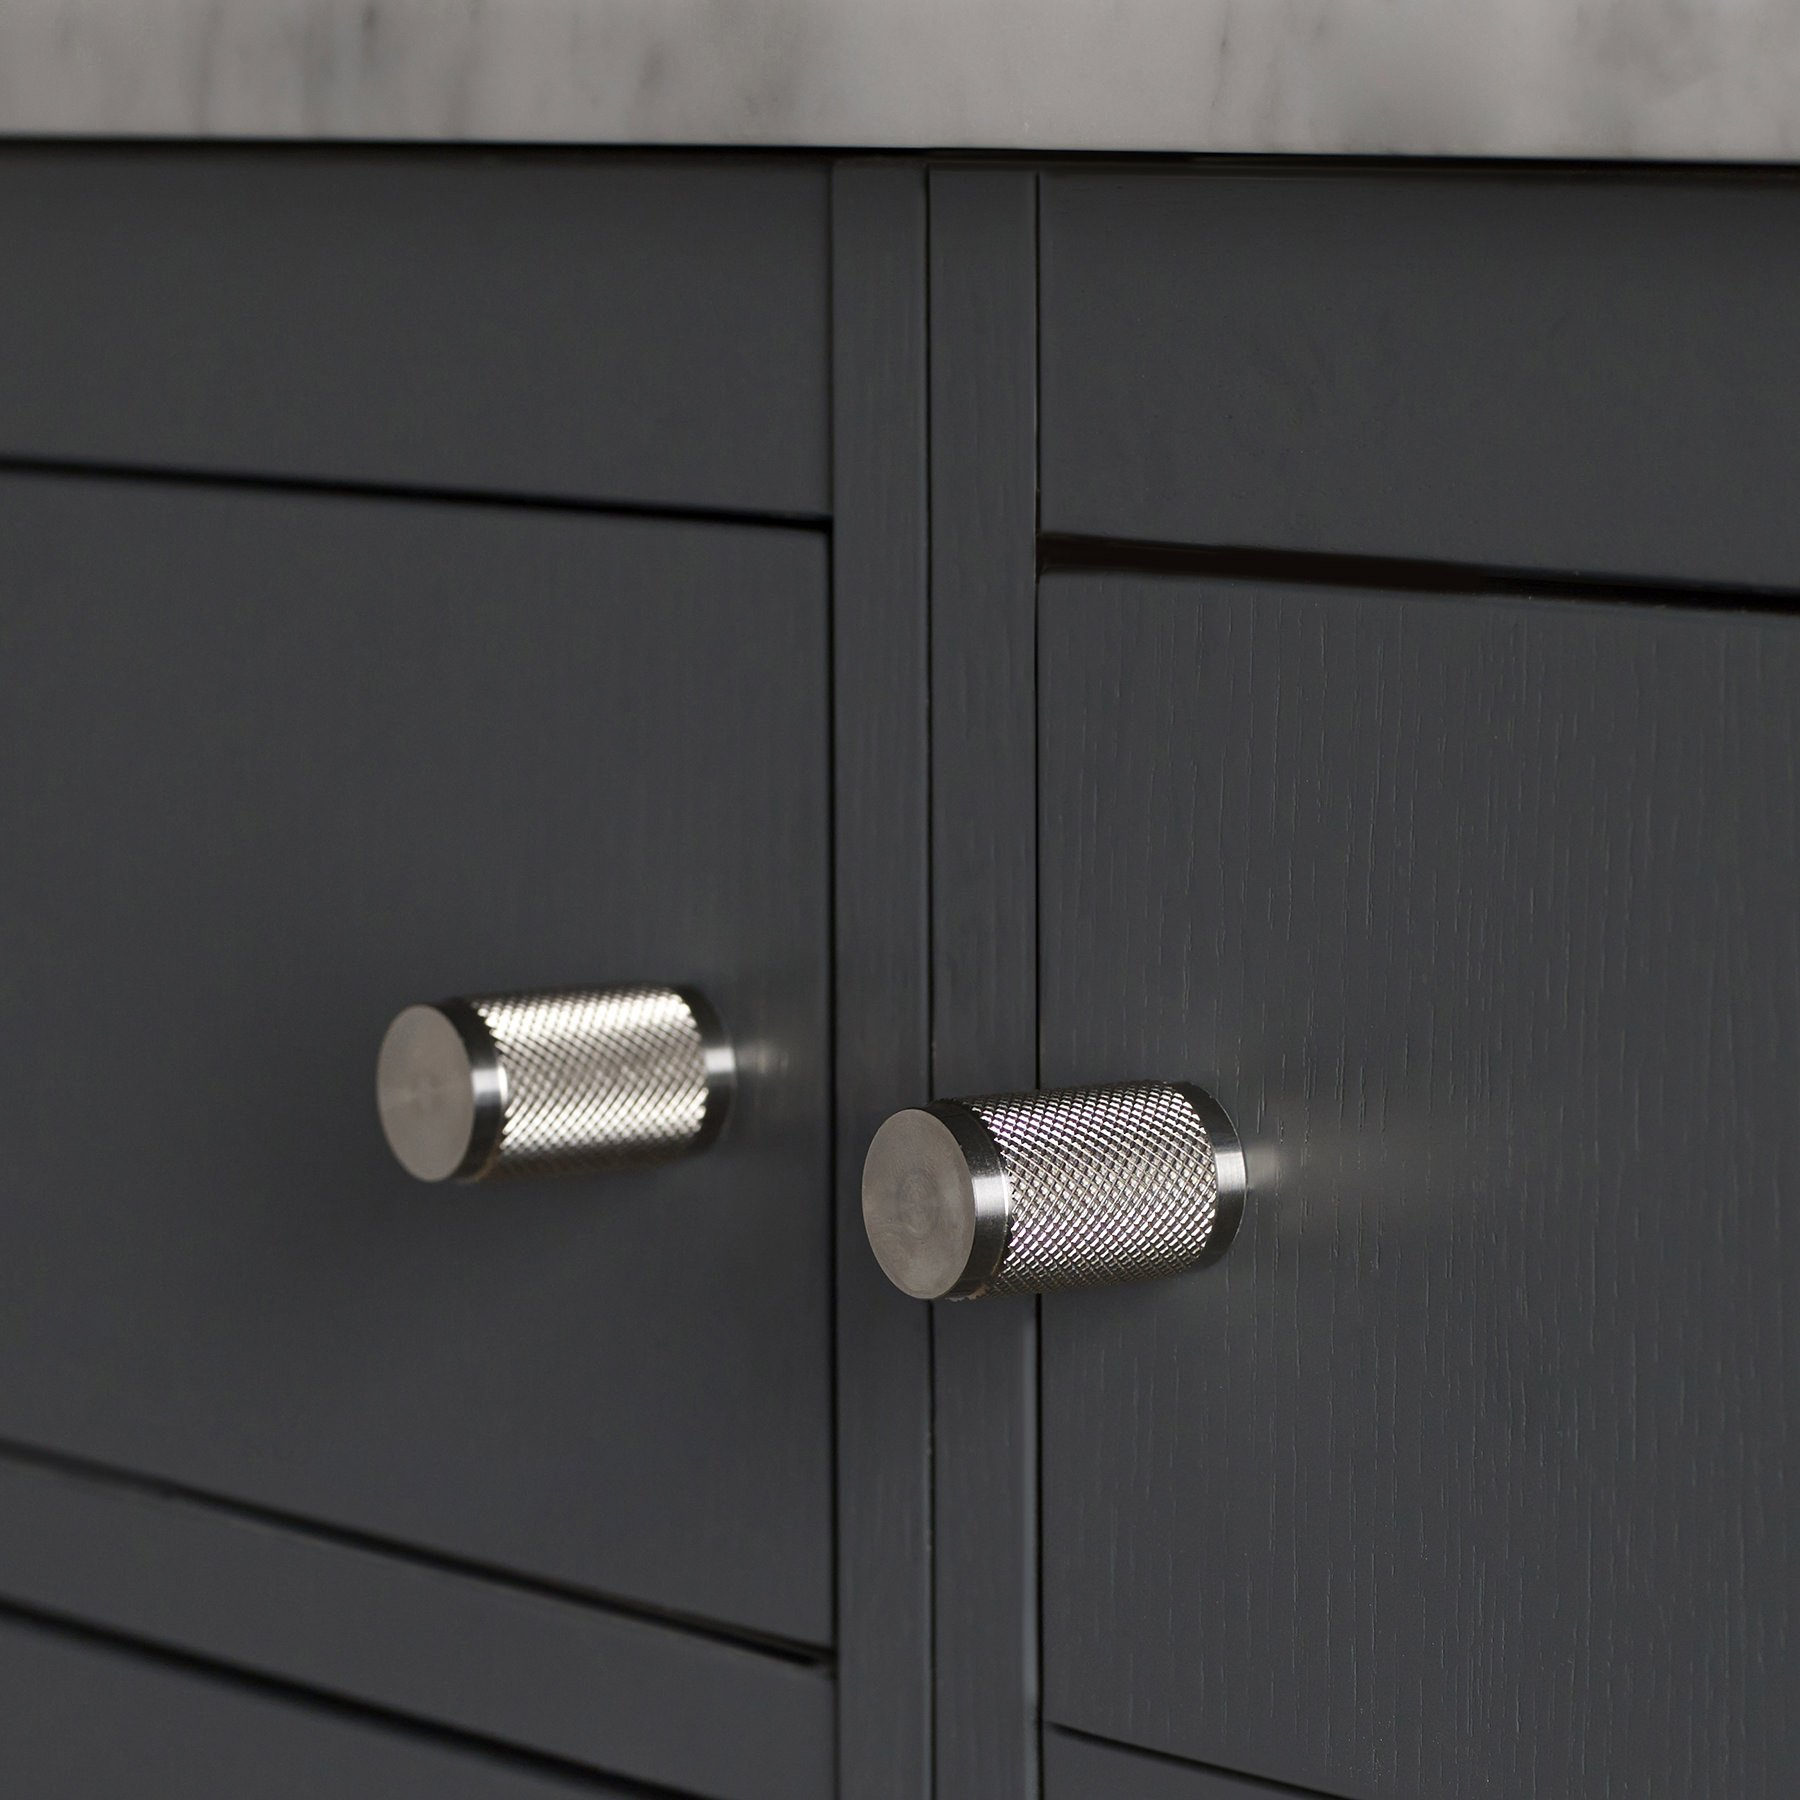 buster_punch_-_furniture_knob_-_steel_-_lifestyle-1_1